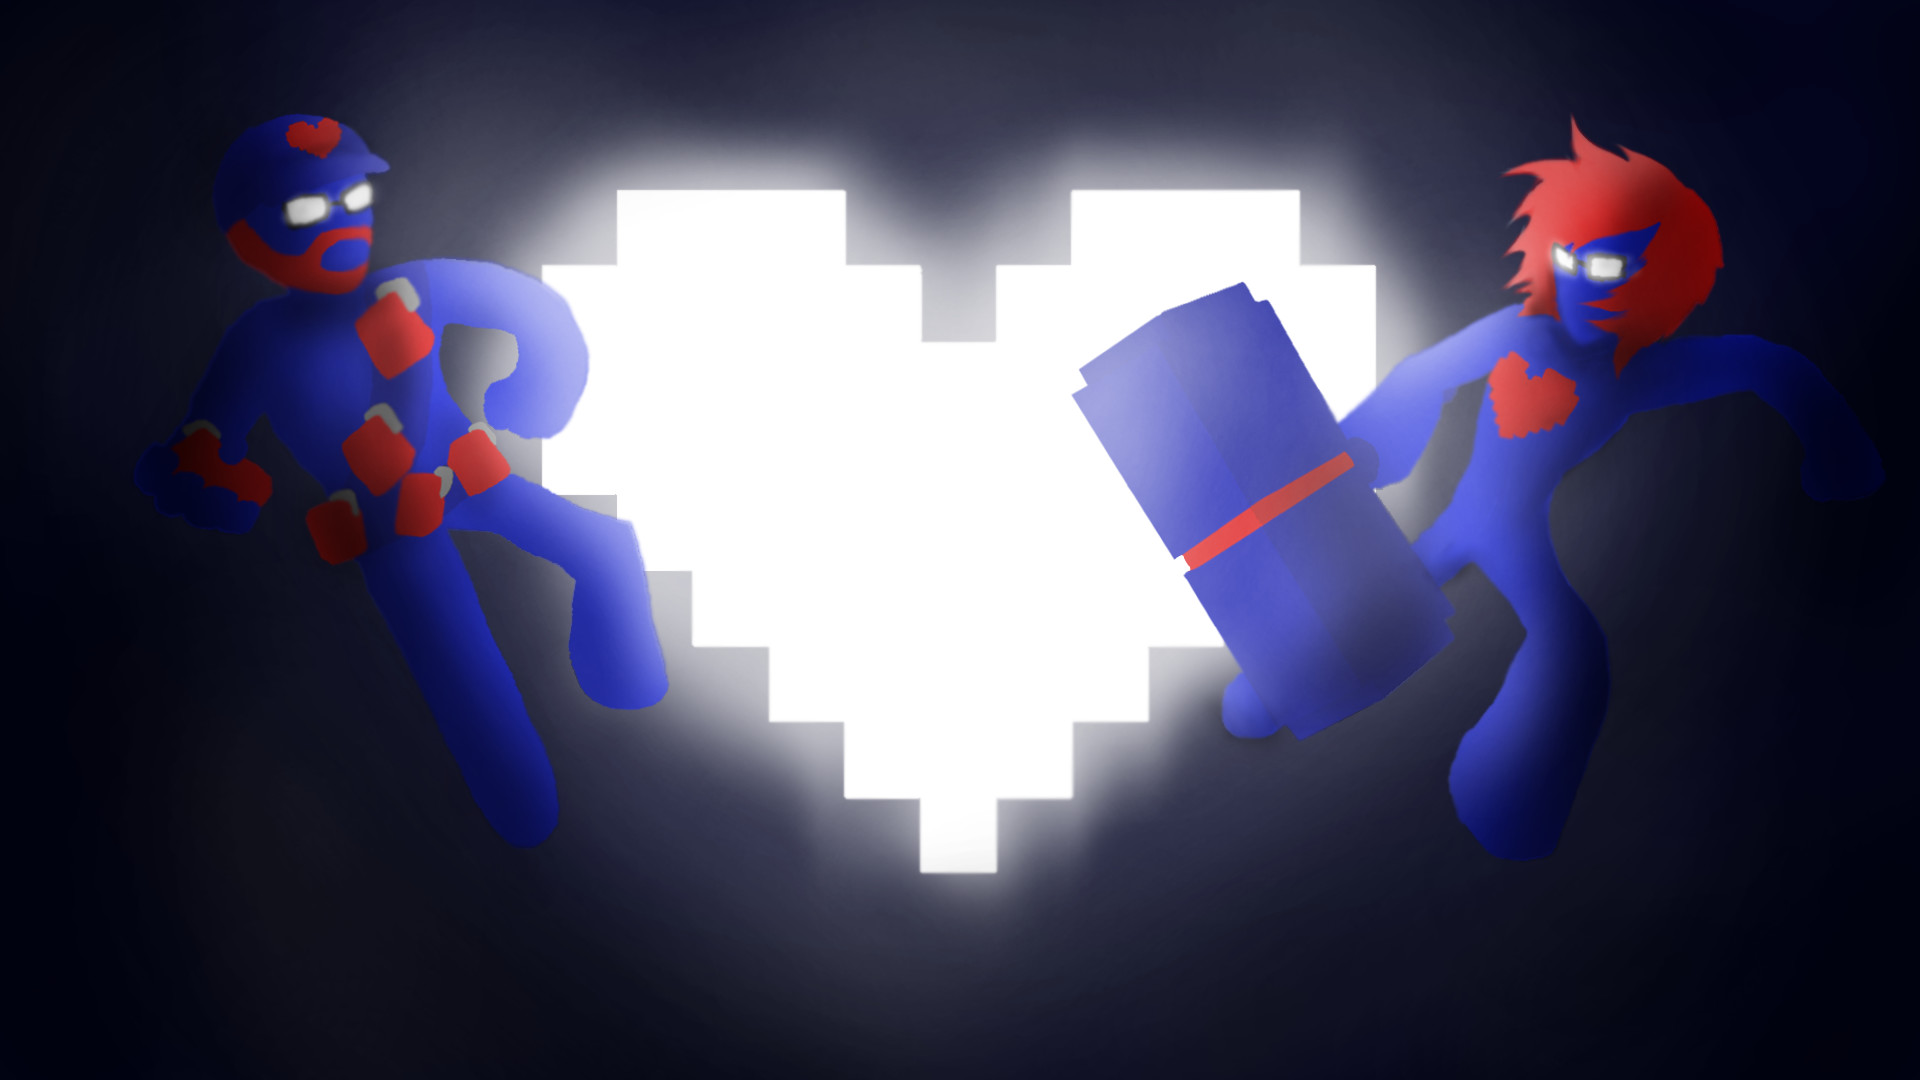 First things first, here's the Pegboard Nerds Wallpaper.